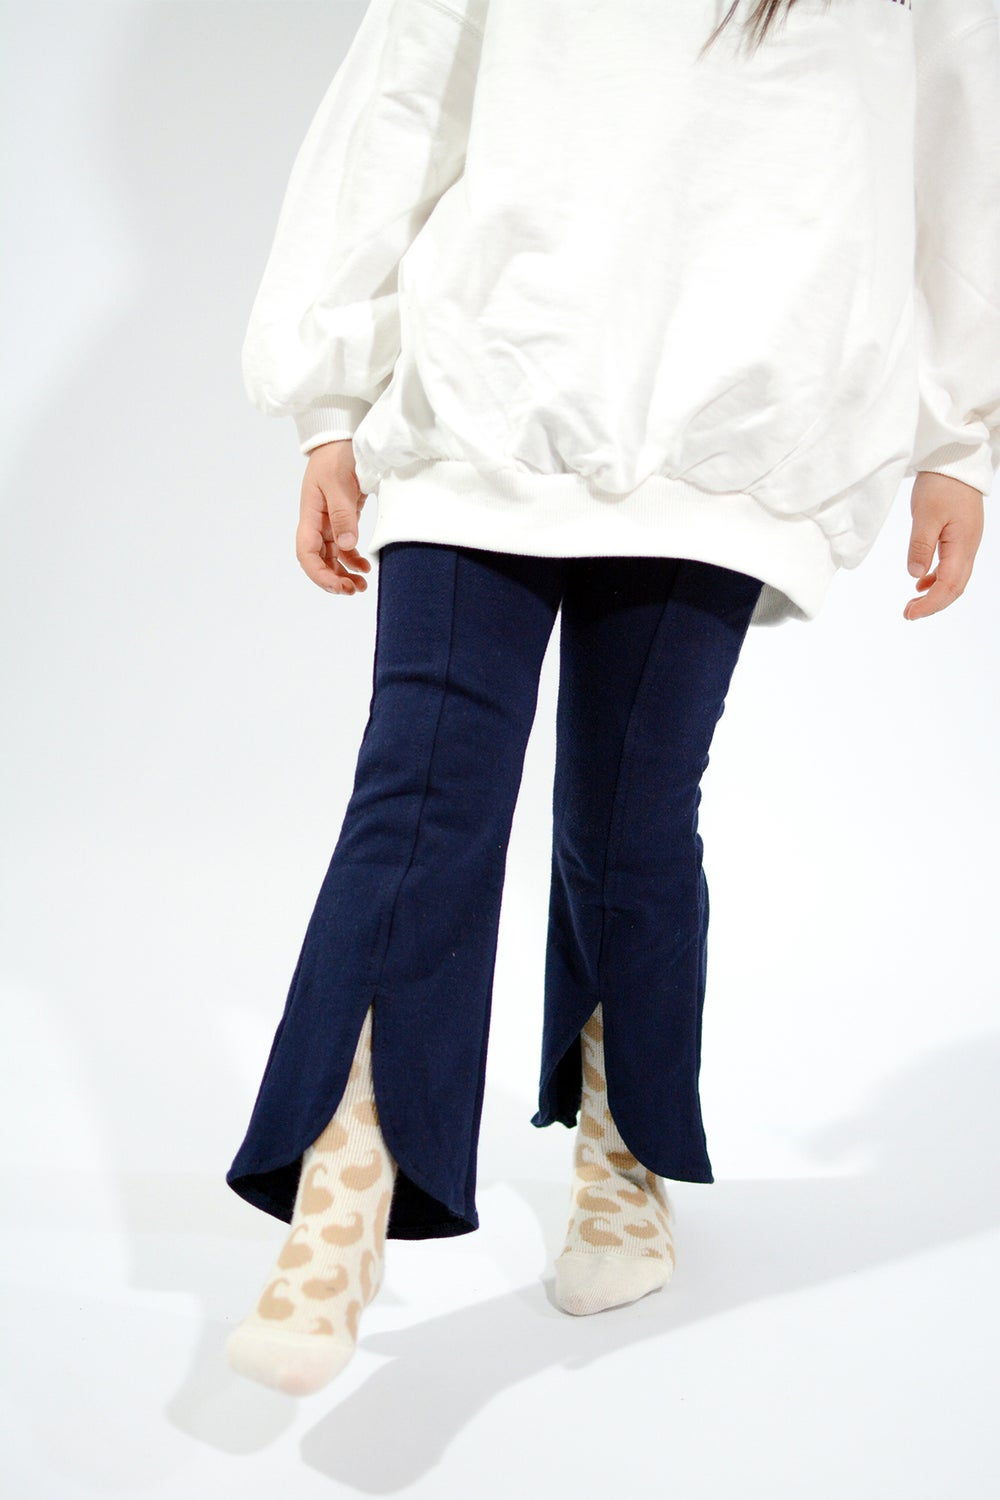 Split Pants P4SS2003 Pantaloni Spacco